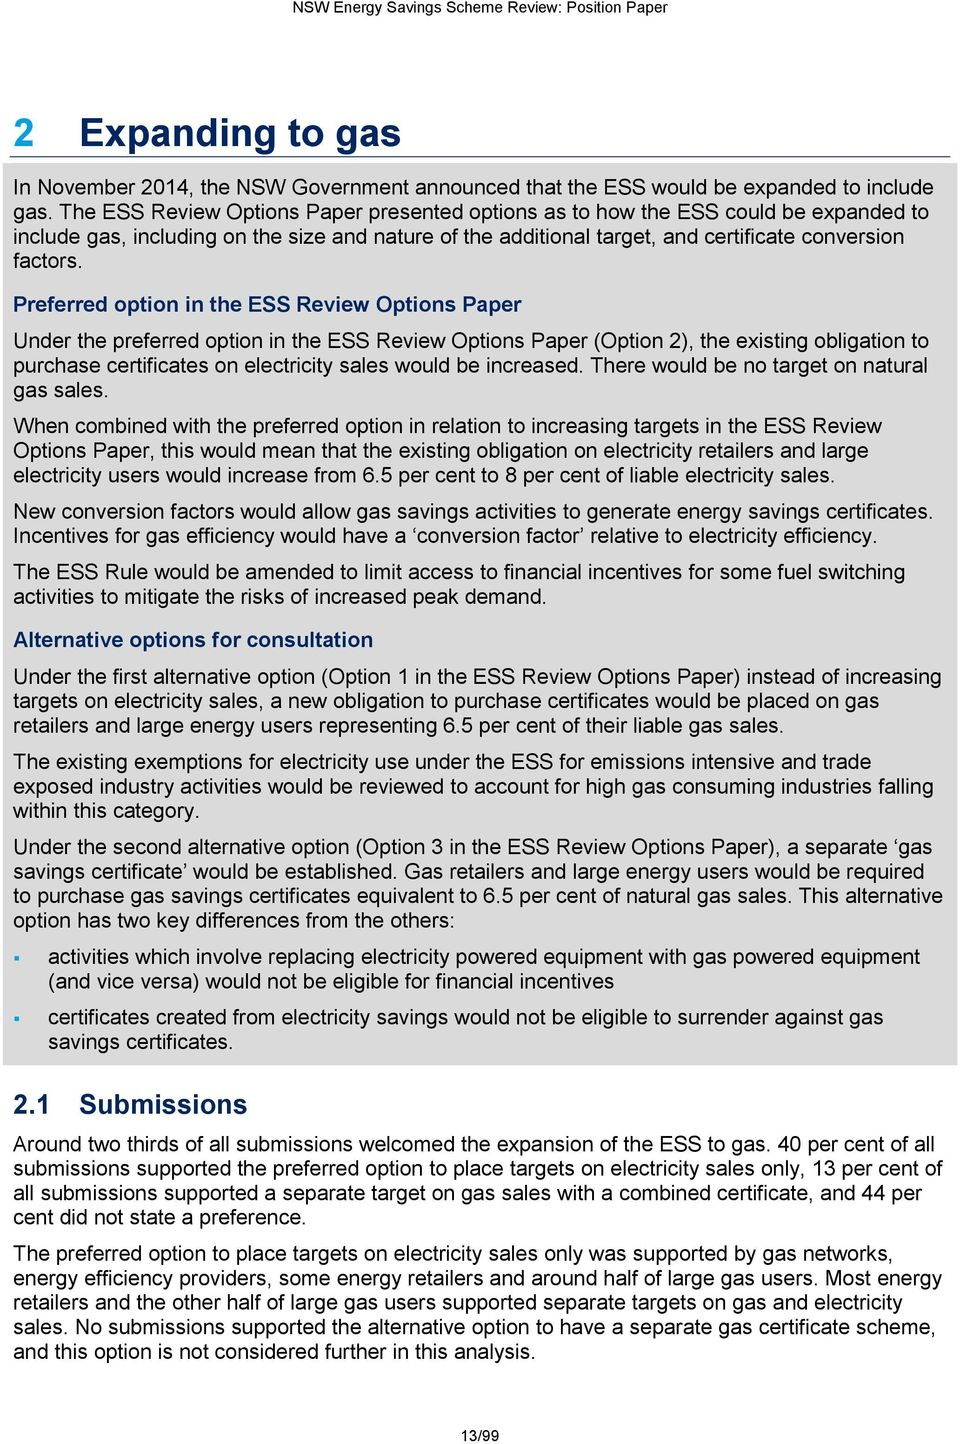 Preferred option in the ESS Review Options Paper Under the preferred option in the ESS Review Options Paper (Option 2), the existing obligation to purchase certificates on electricity sales would be